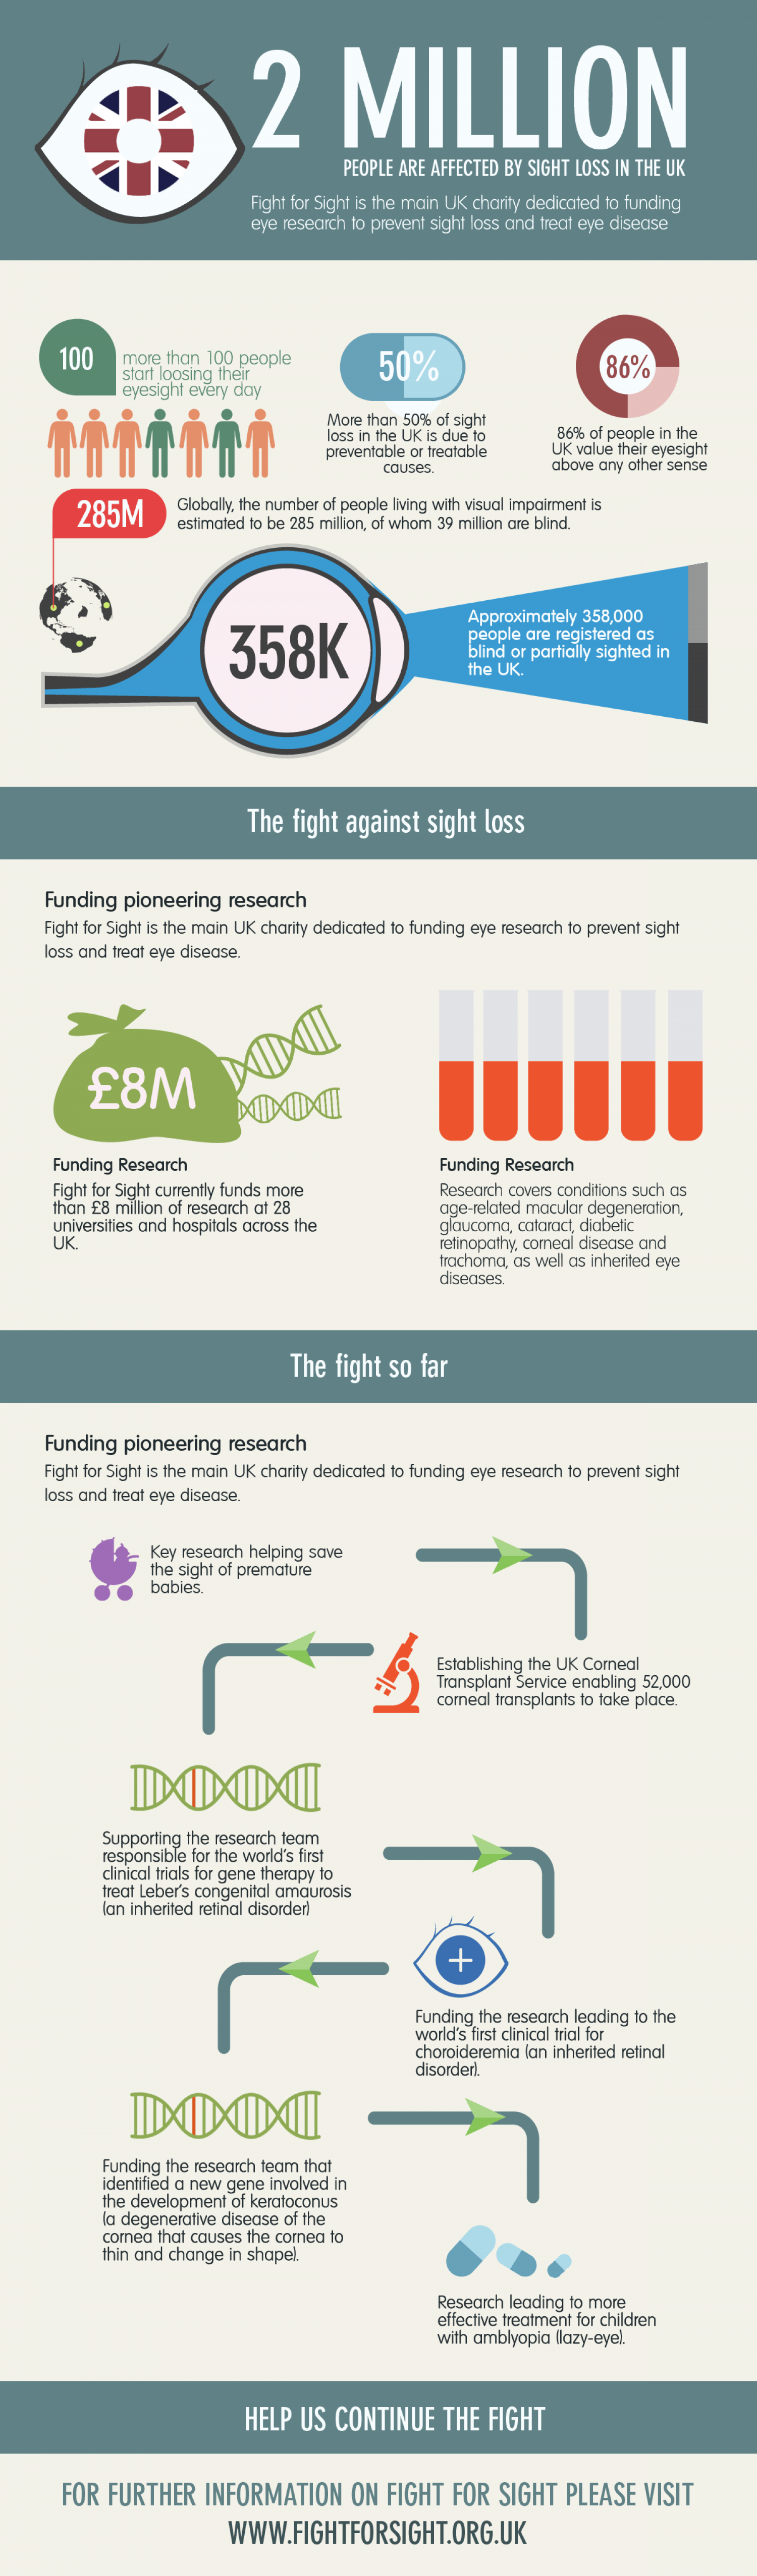 The Fight Against Sight Loss Infographic